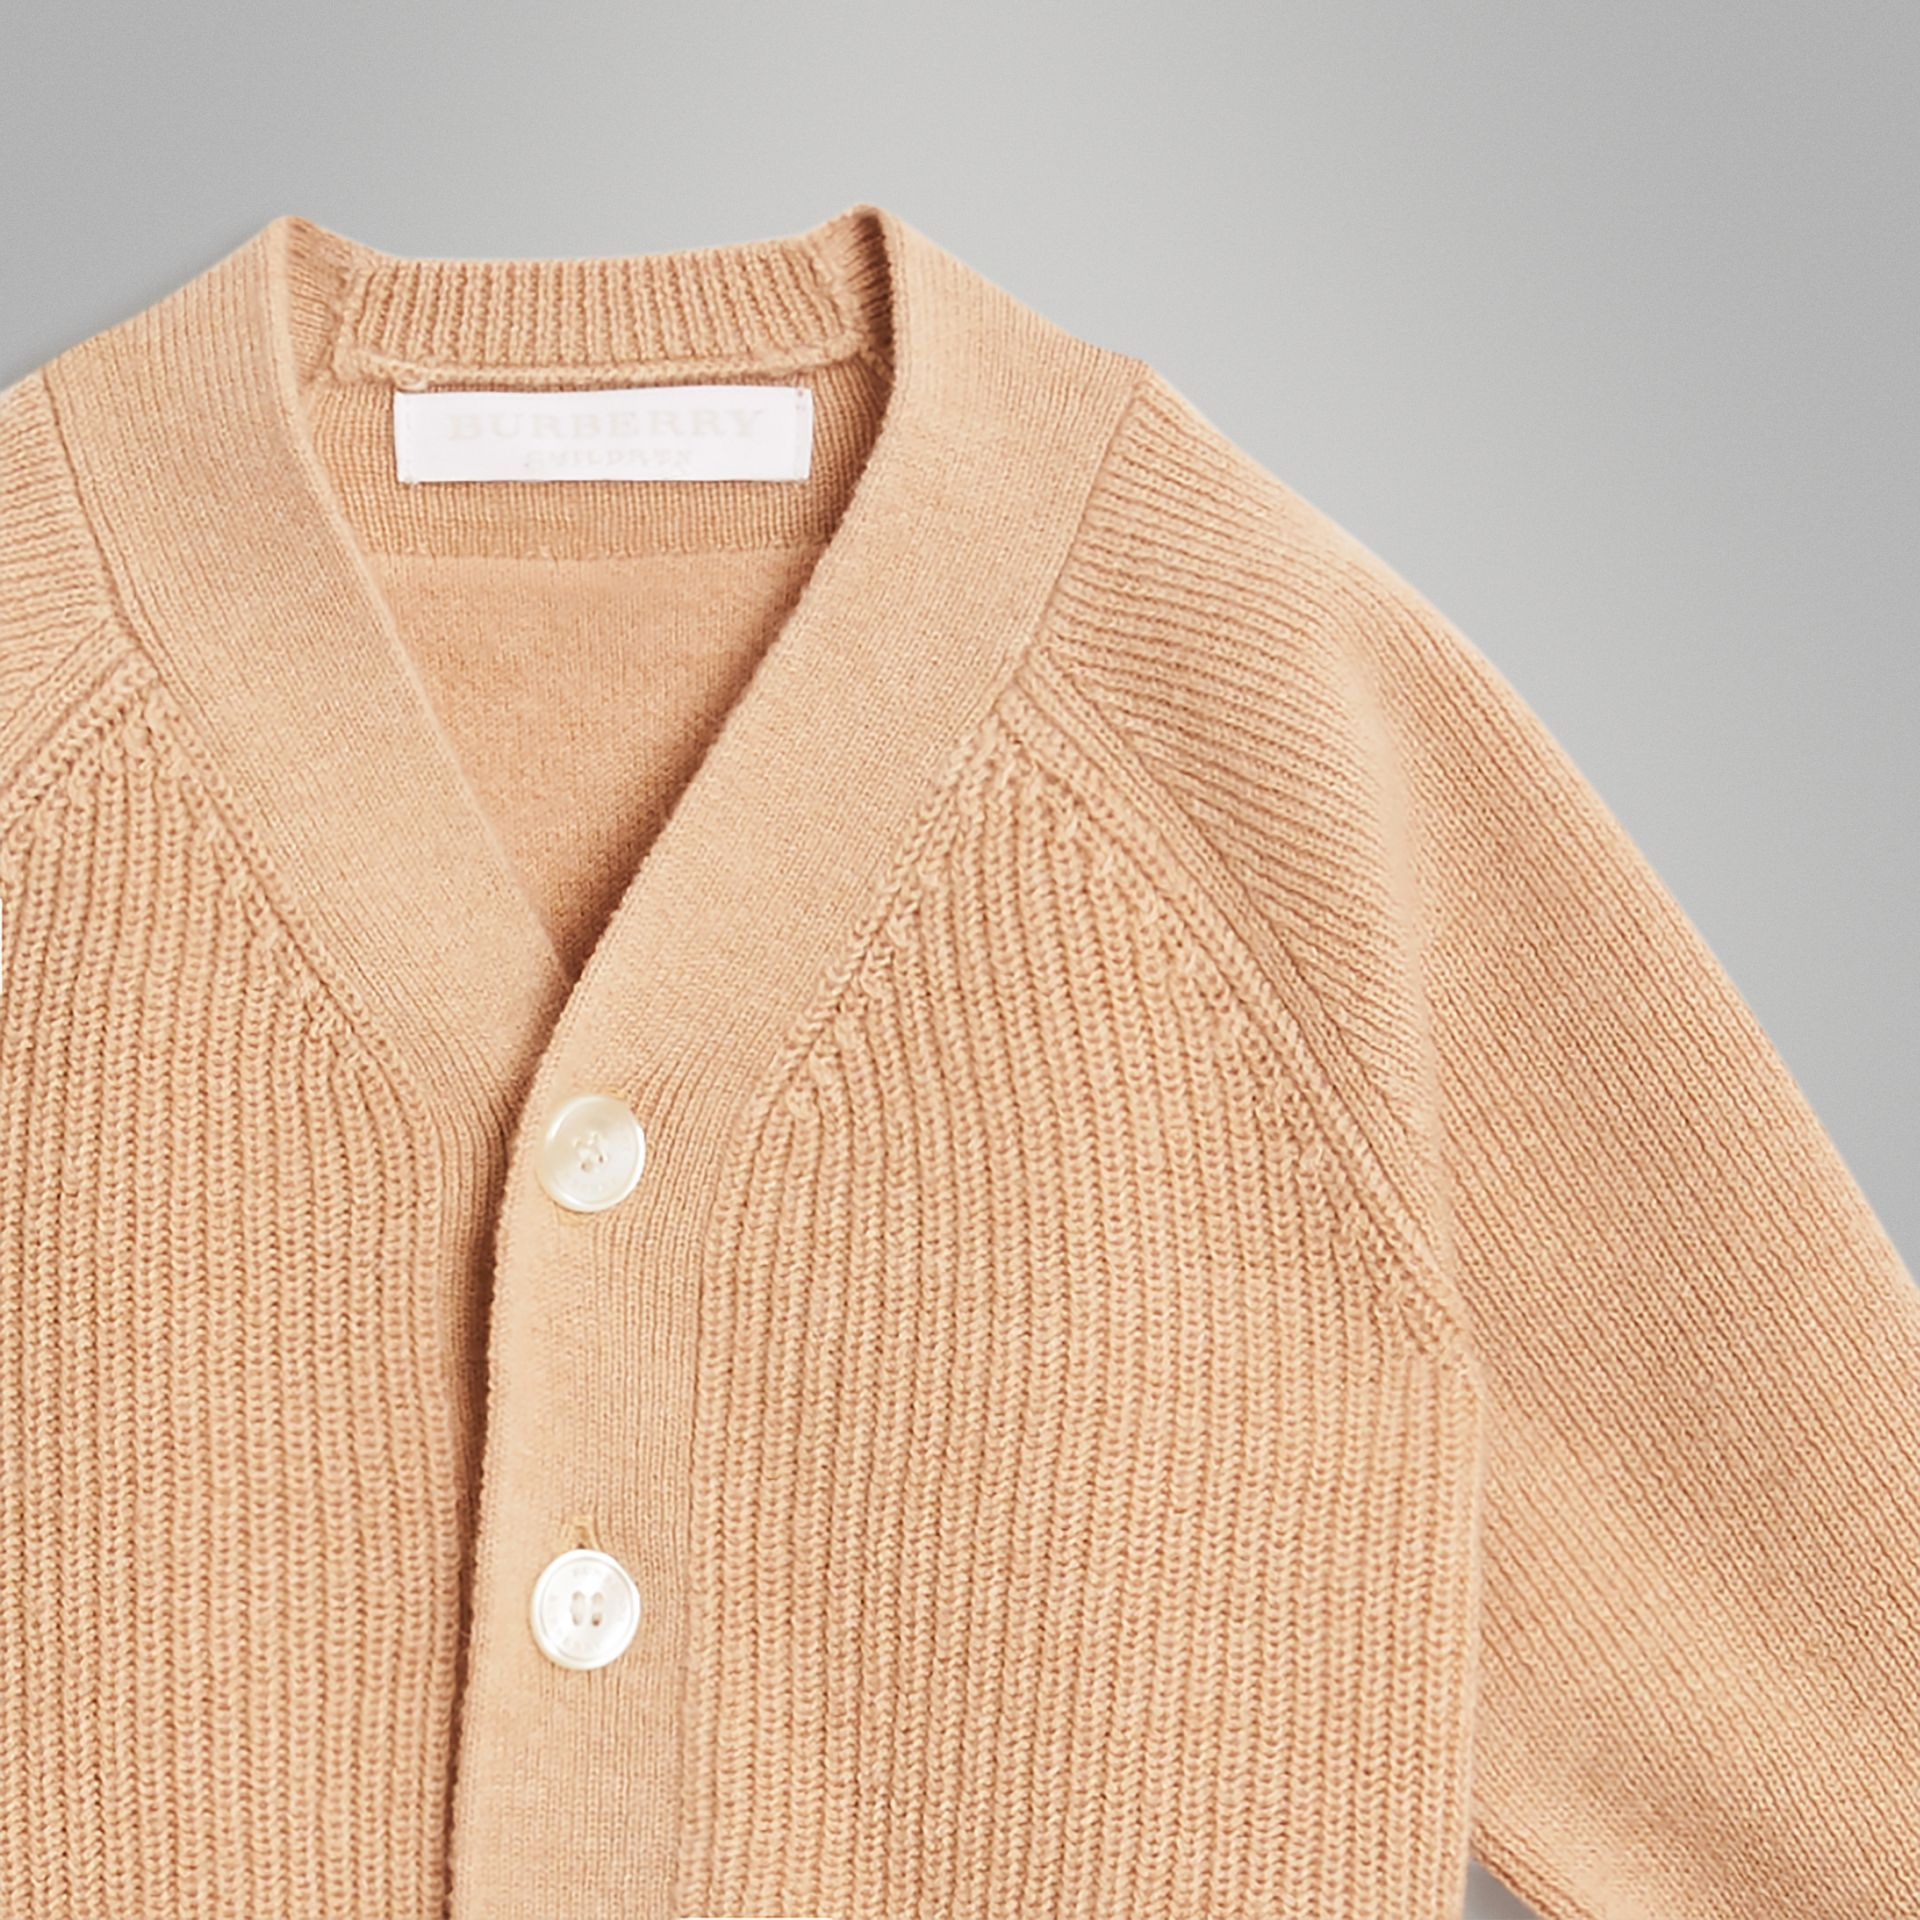 Cashmere Cotton Knit Cardigan in Peach - Children | Burberry Hong Kong - gallery image 4